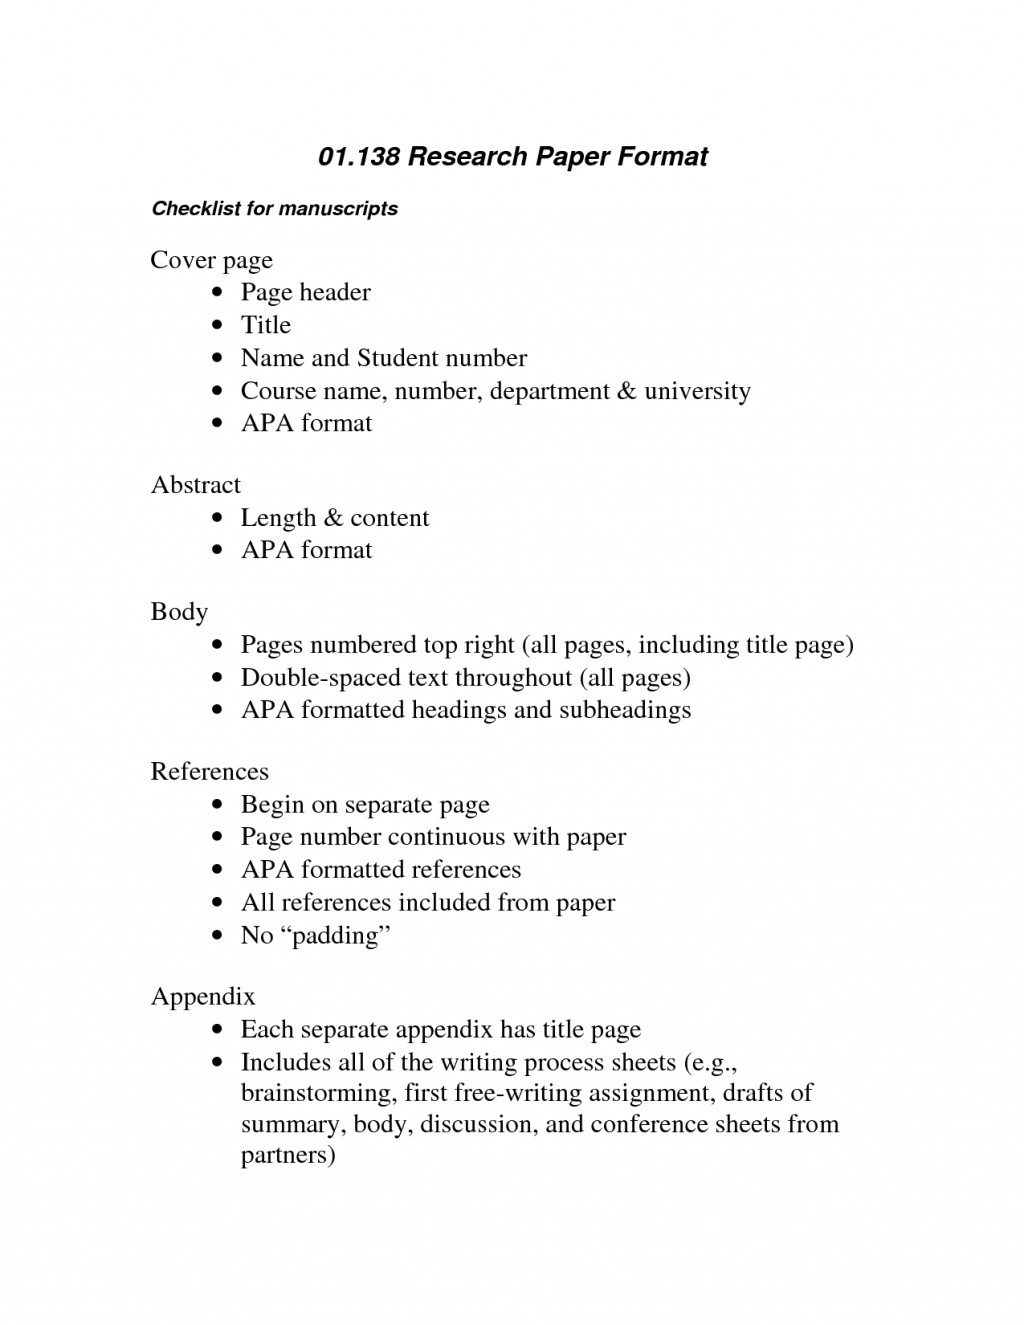 002 Apa Research Paper Format Outstanding Purdue Owl Example 2015 Large